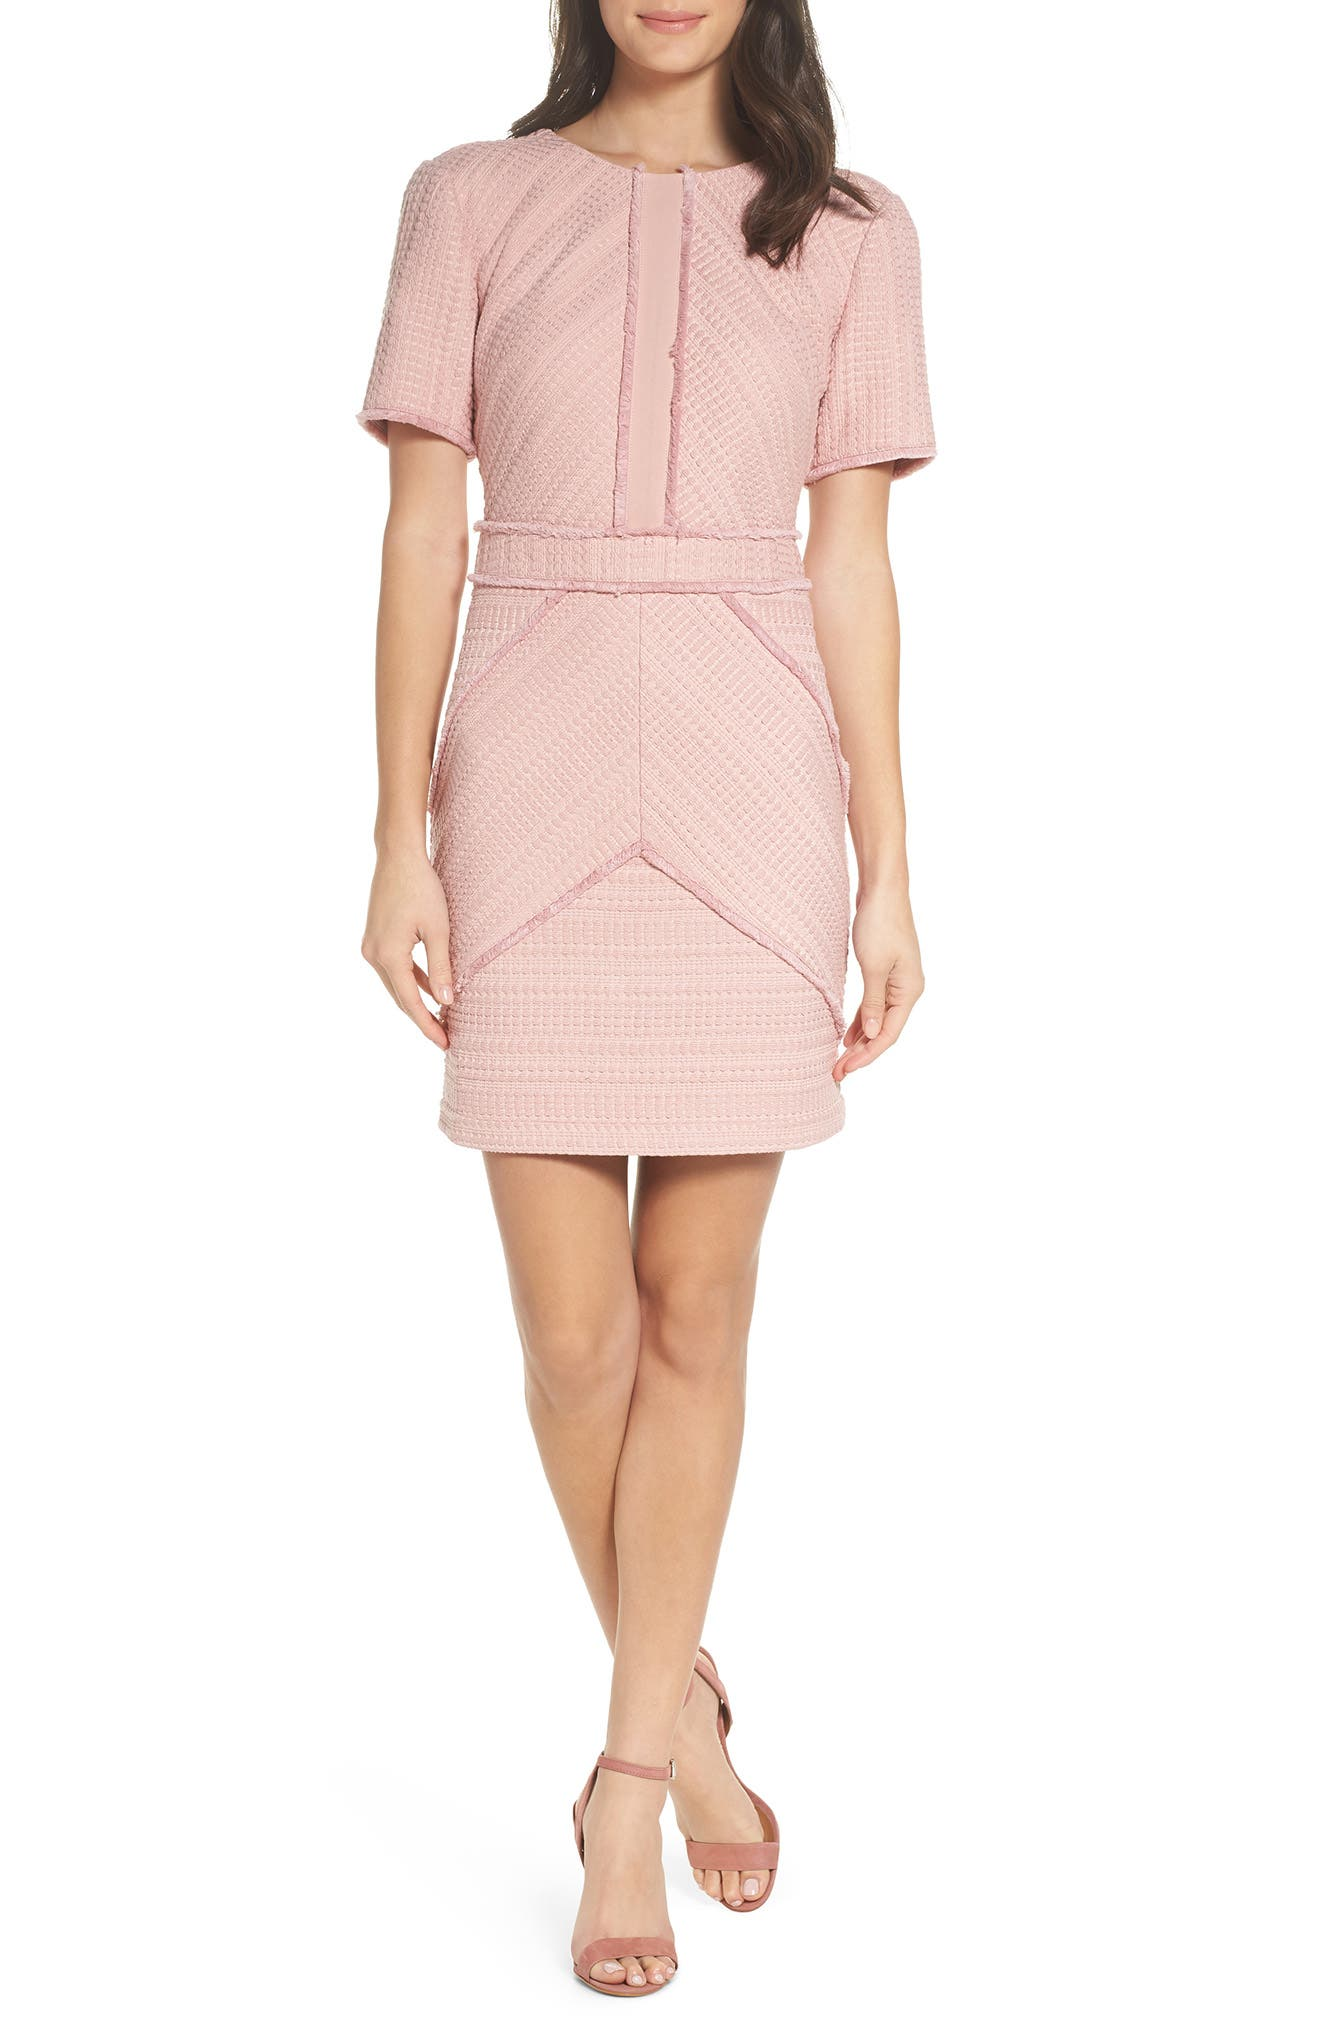 Adelyn Rae TESSA SHEATH DRESS